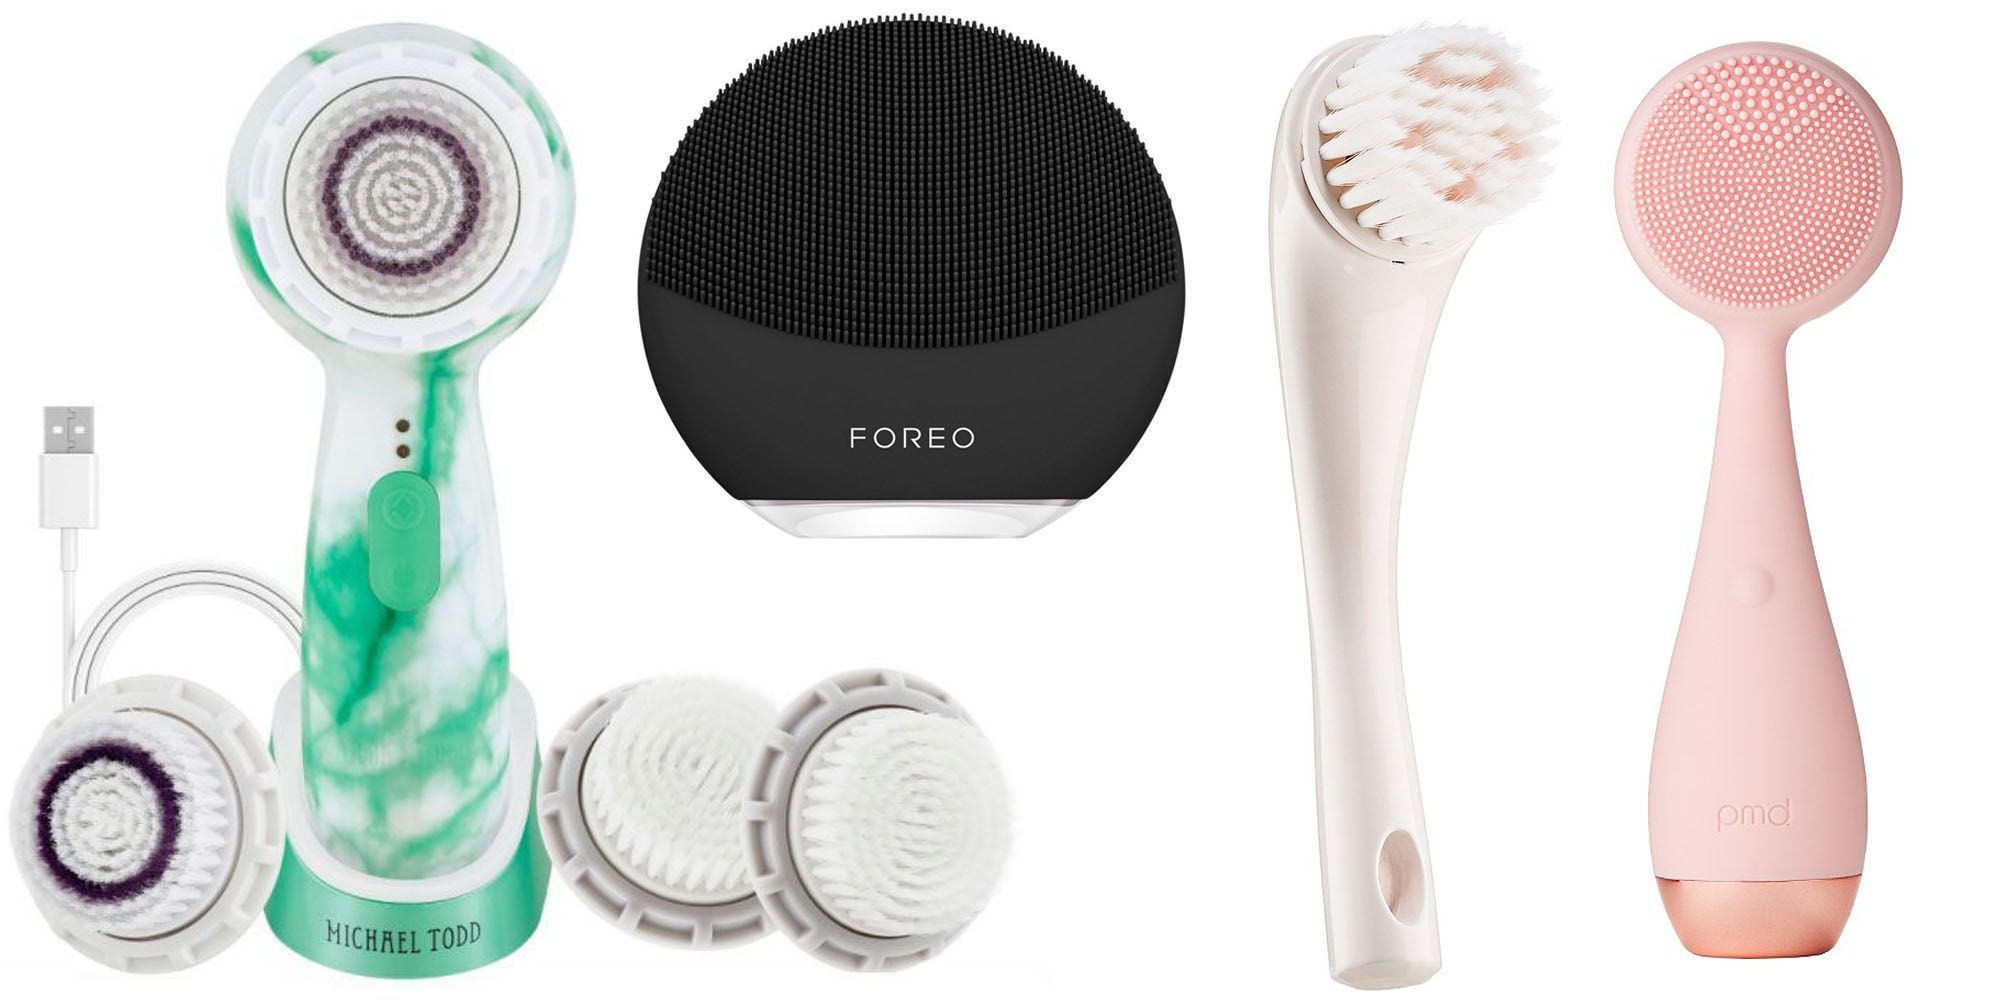 Best Facial Cleansing Brush 2021 The 7 Best Facial Cleansing Brushes for Every Skin Type   New